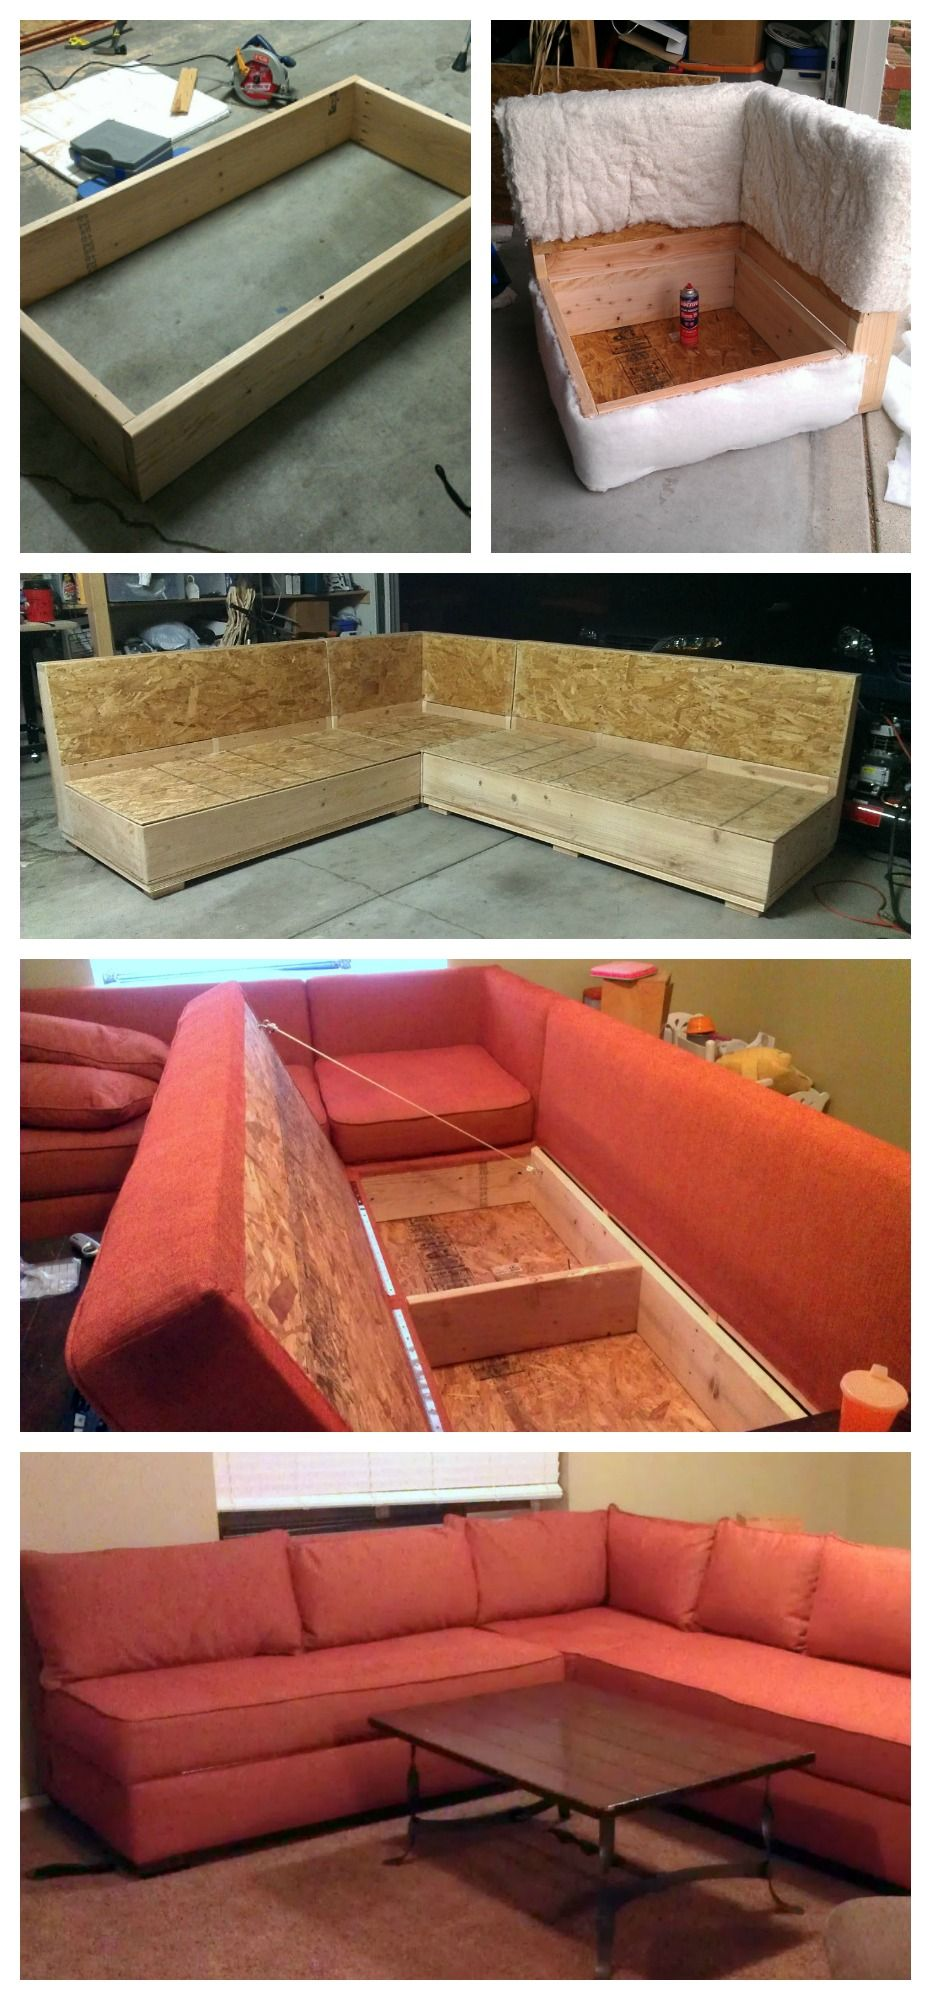 Diy Sofa Sectional With Storage Uses Store Bought Cushions